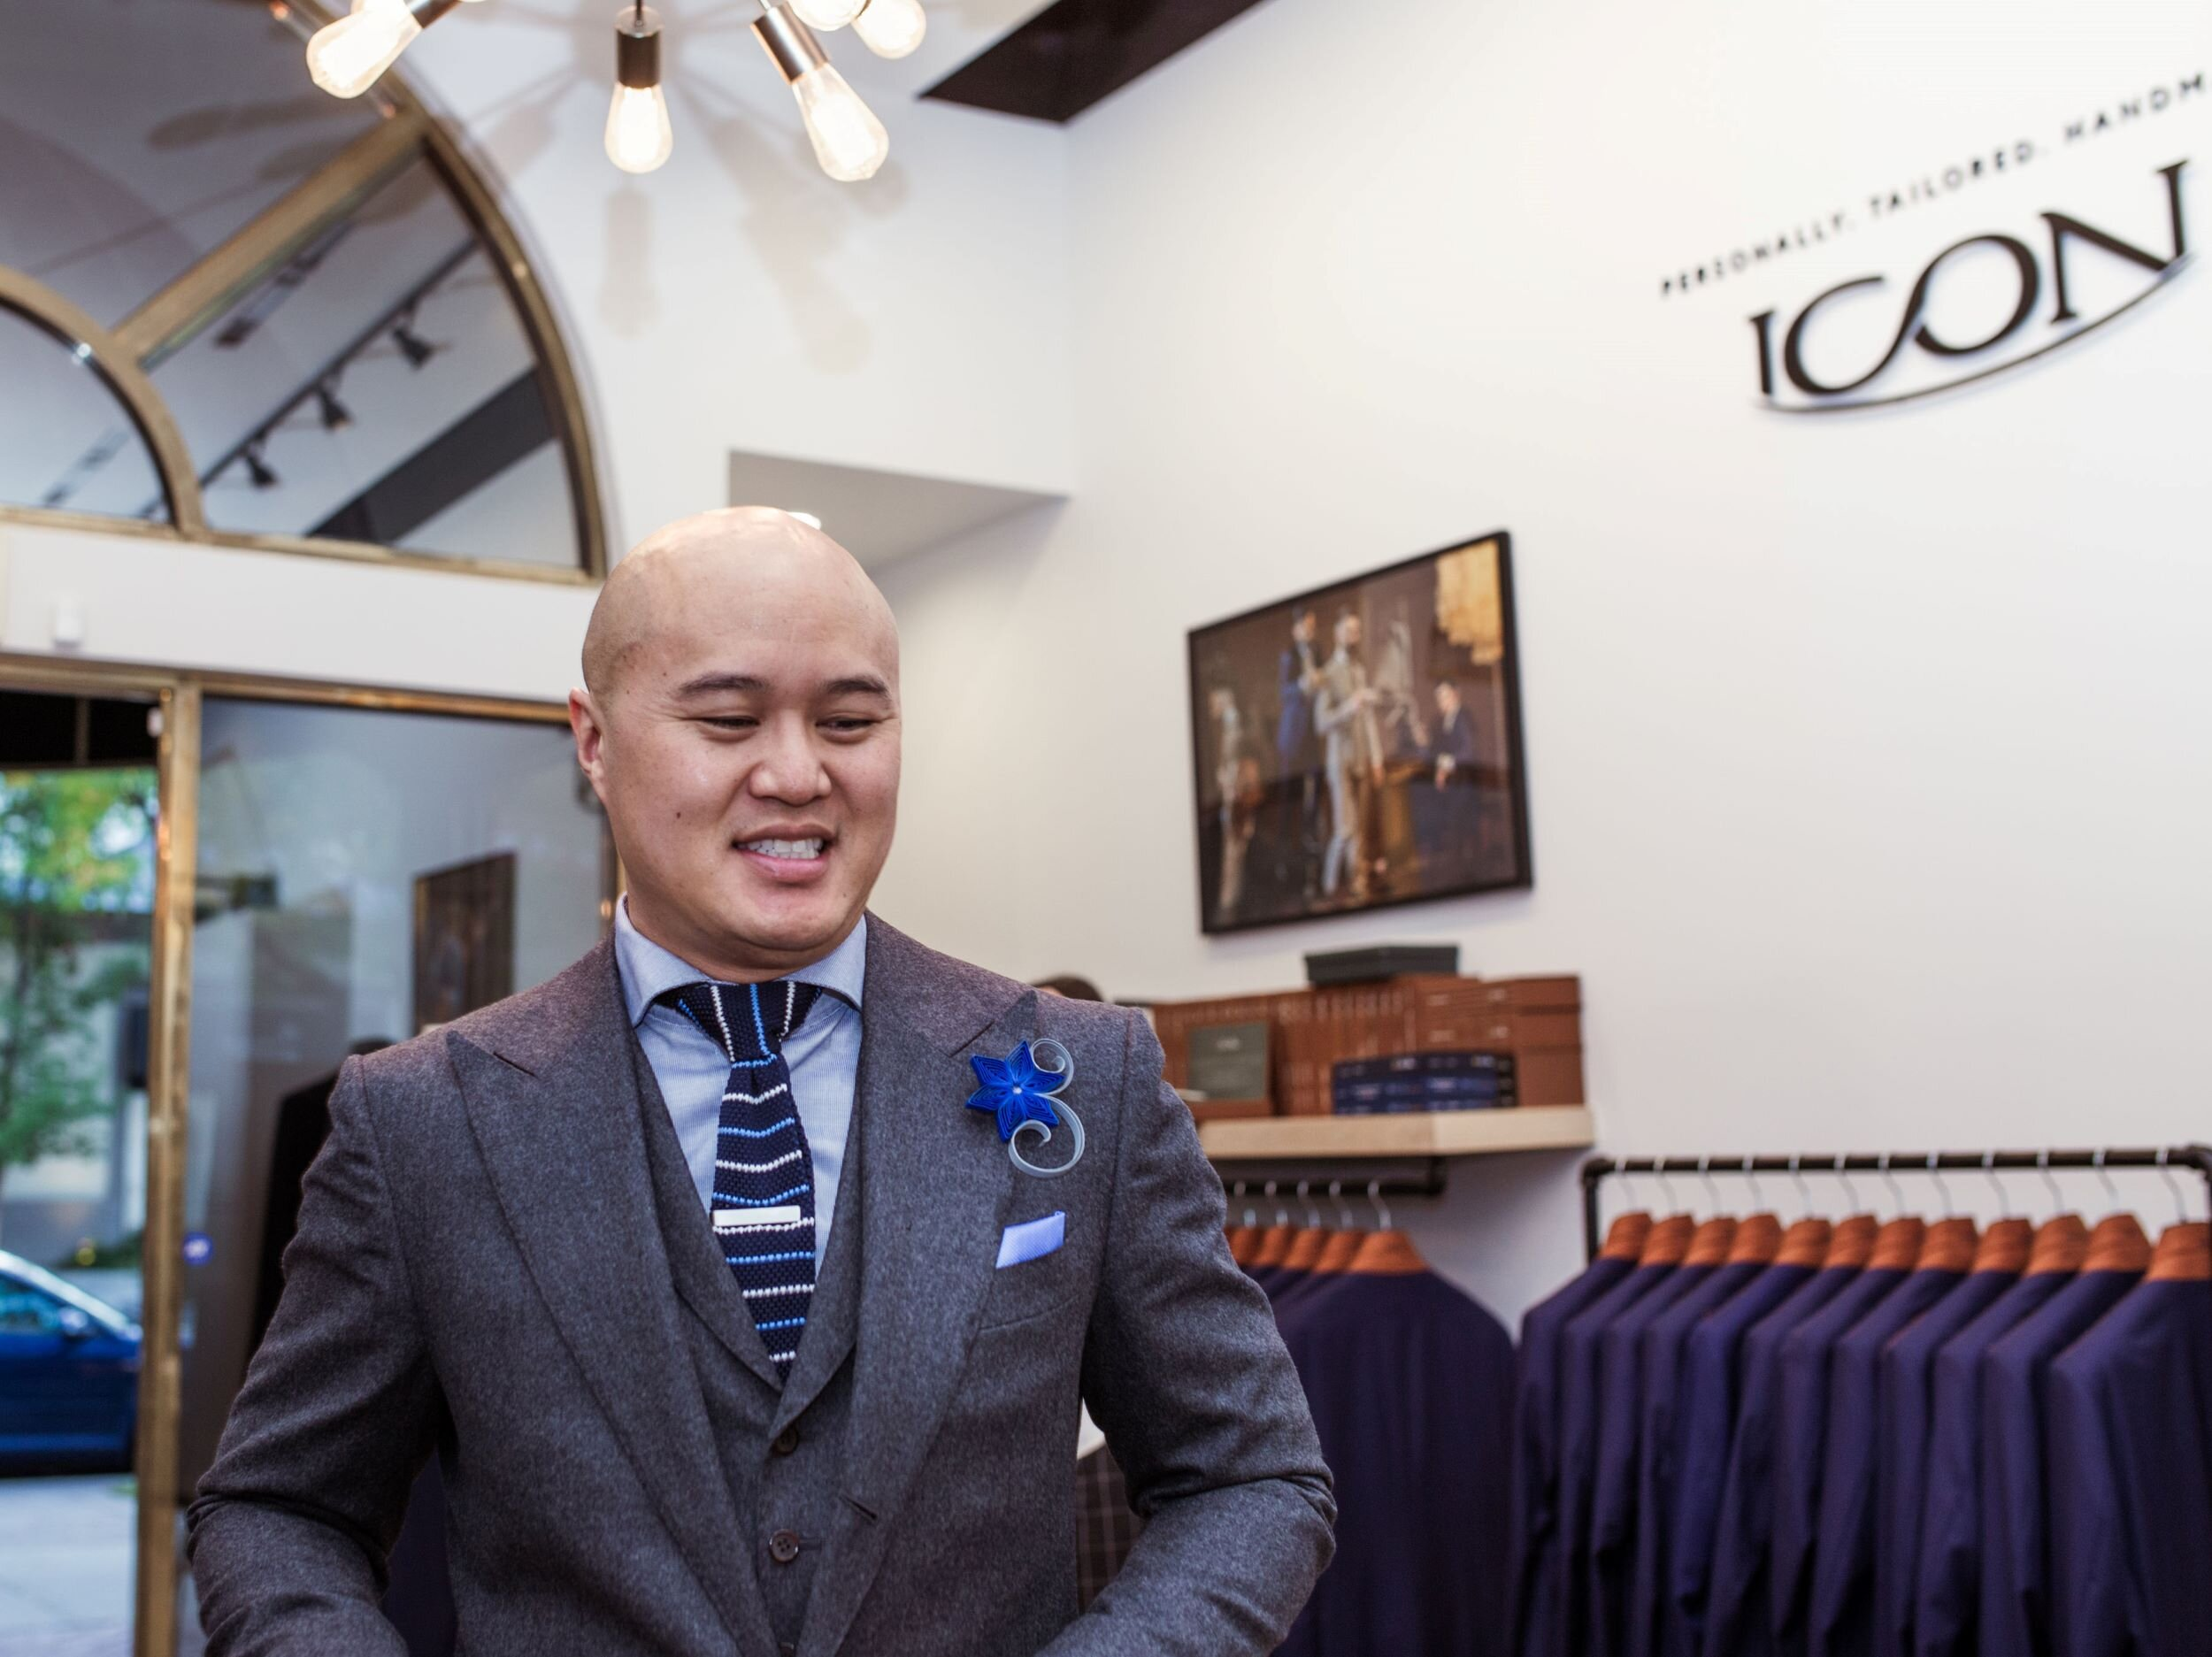 Cherry Creek Fashion and Icon Suit partner to present The Men's Issue Party